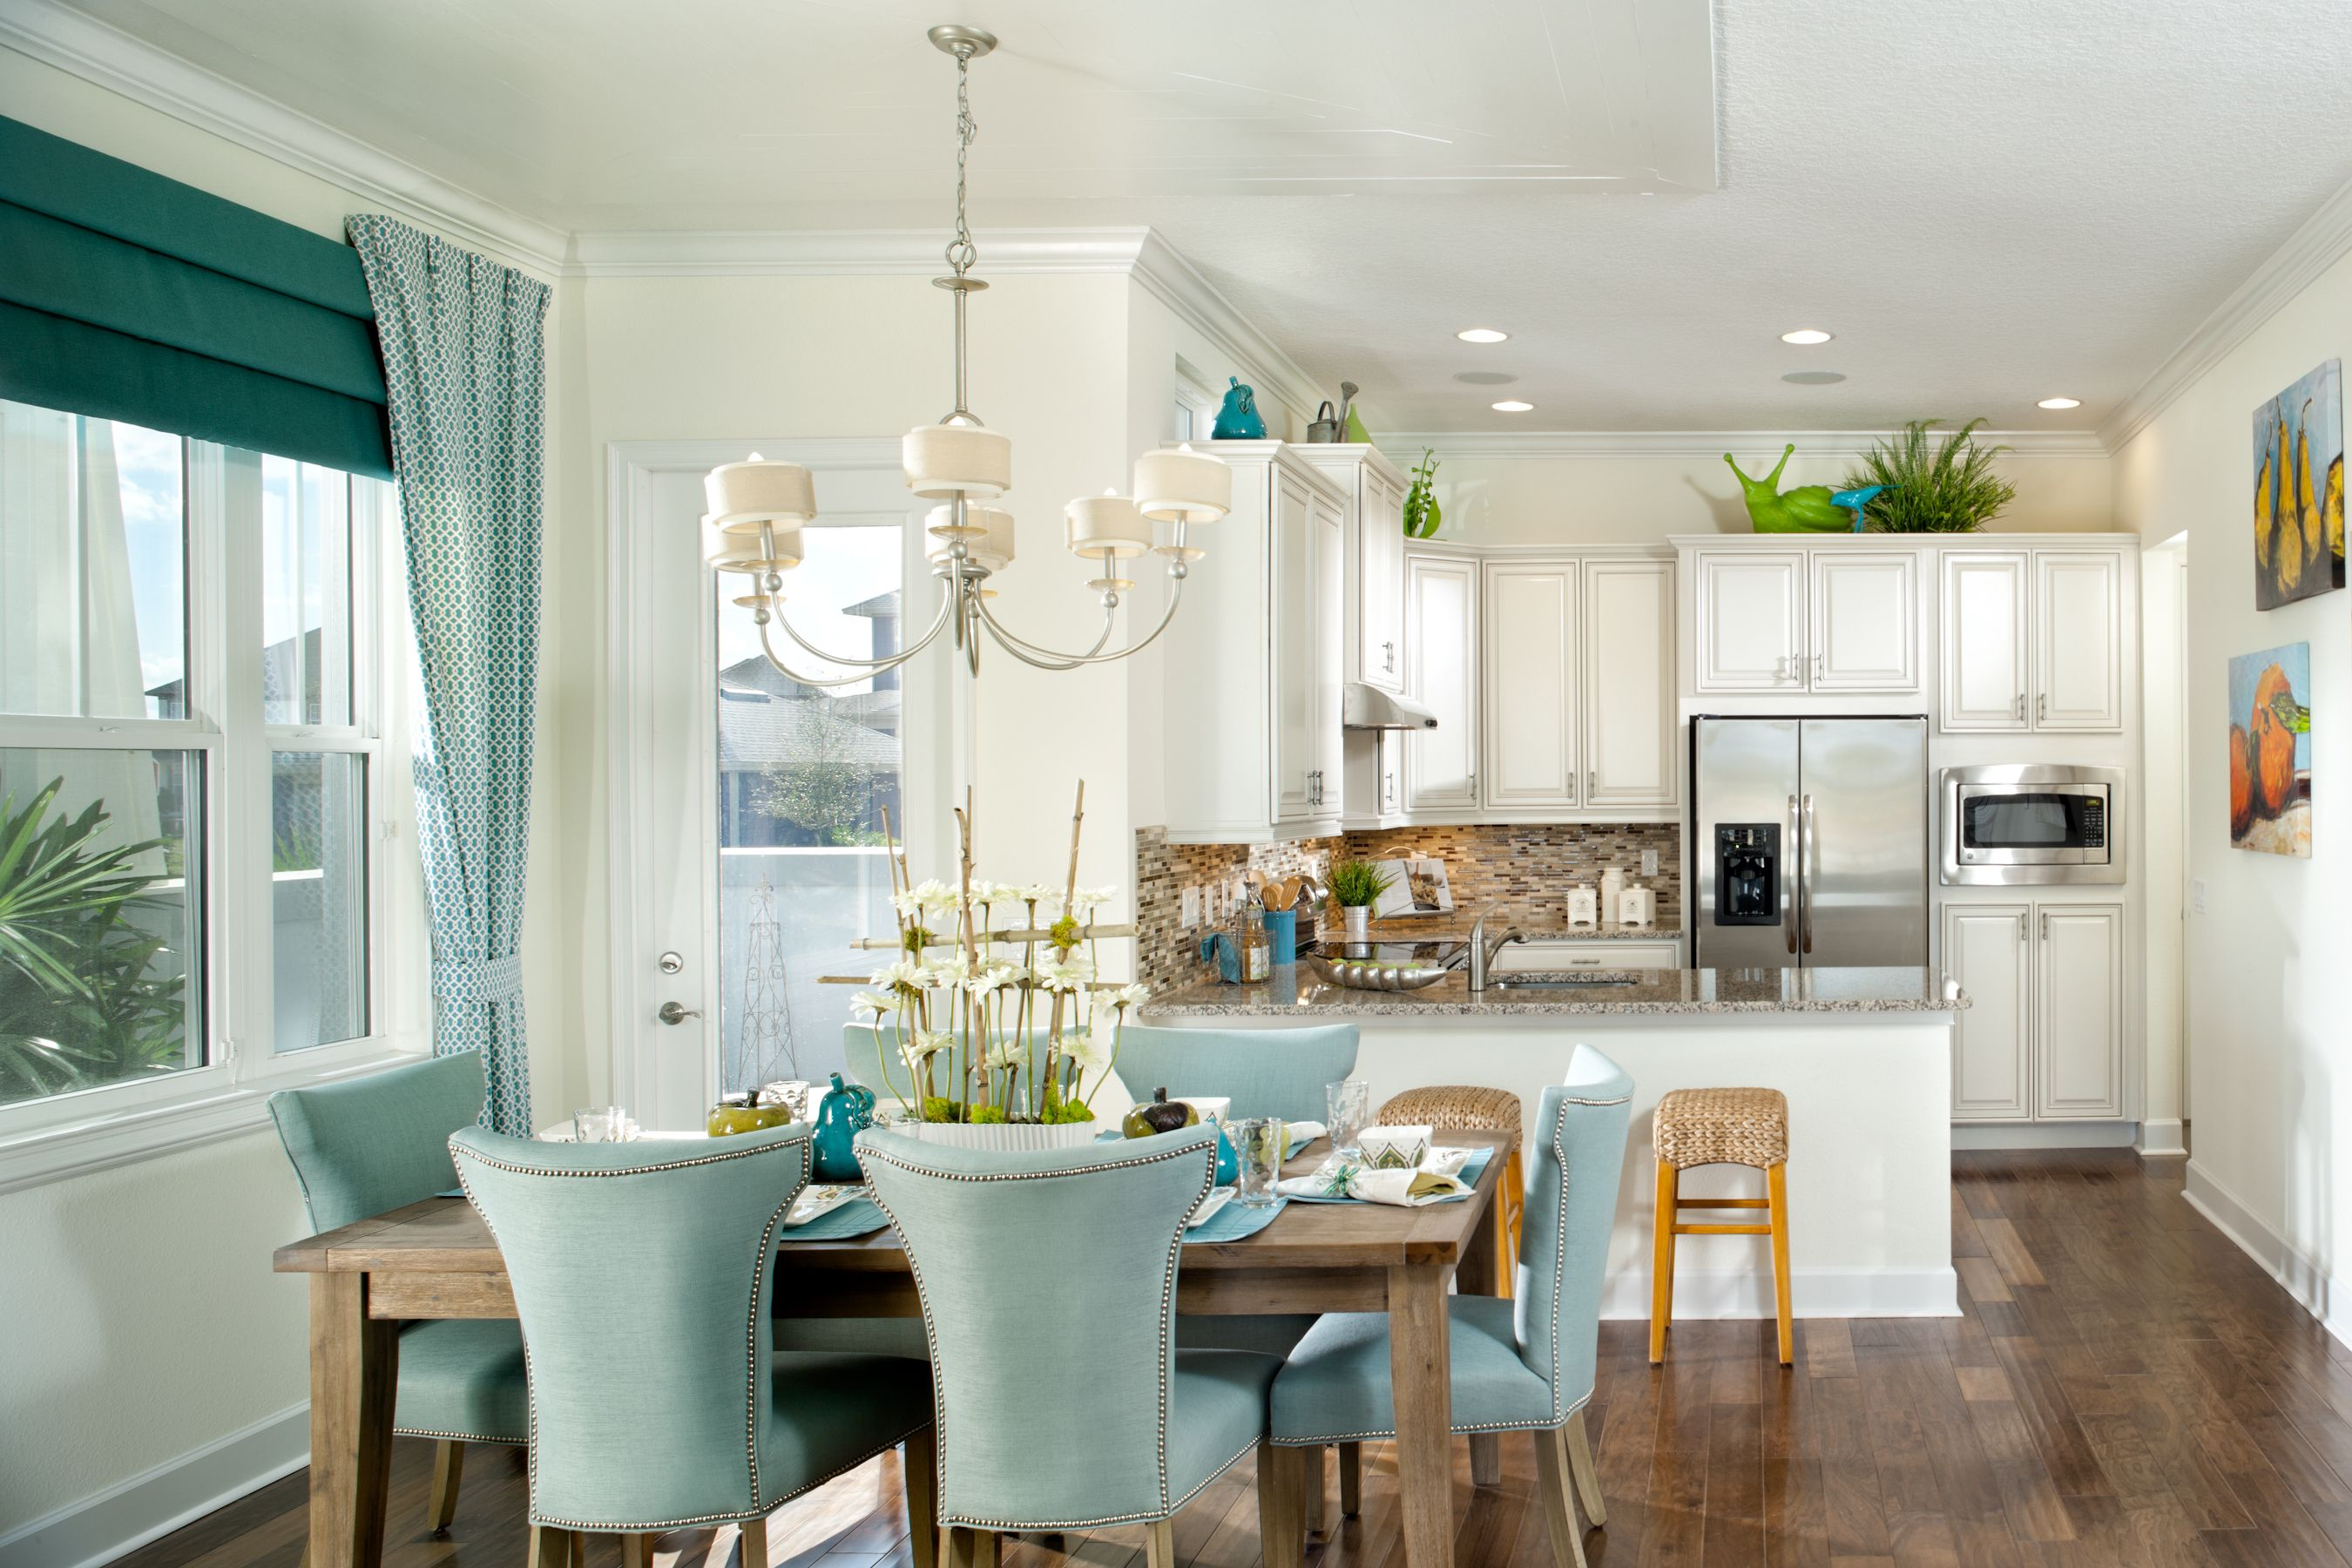 Kendall model homes